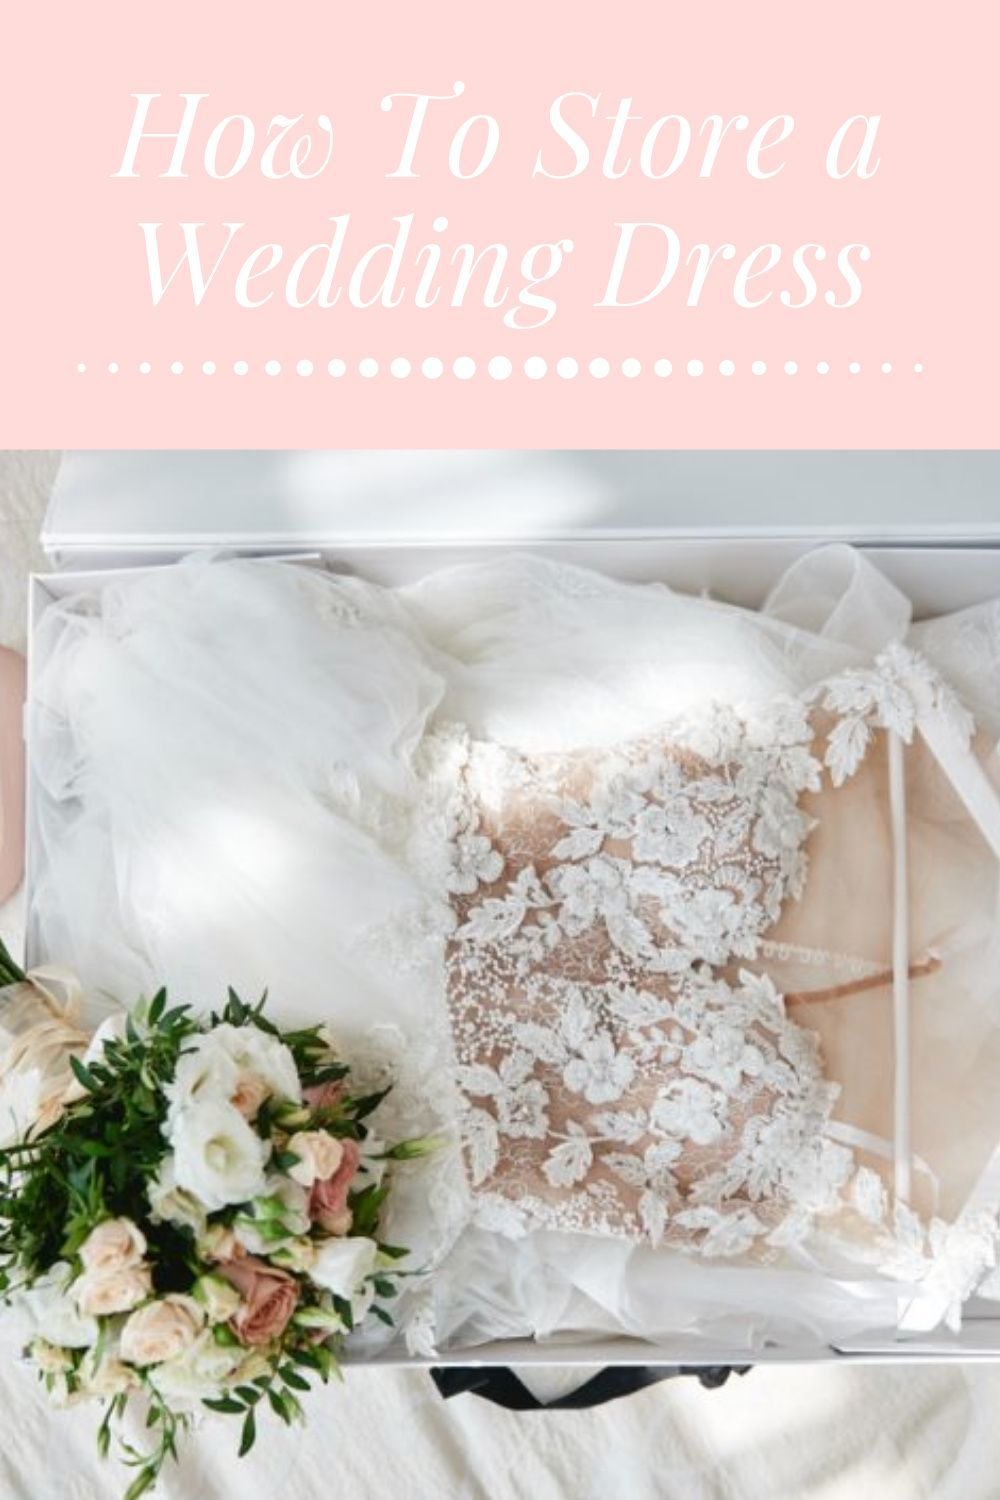 How To Store A Wedding Dress Wedding Dress Preservation Yeah Weddings In 2020 Wedding Dresses Dress Preservation Wedding Dress Preservation